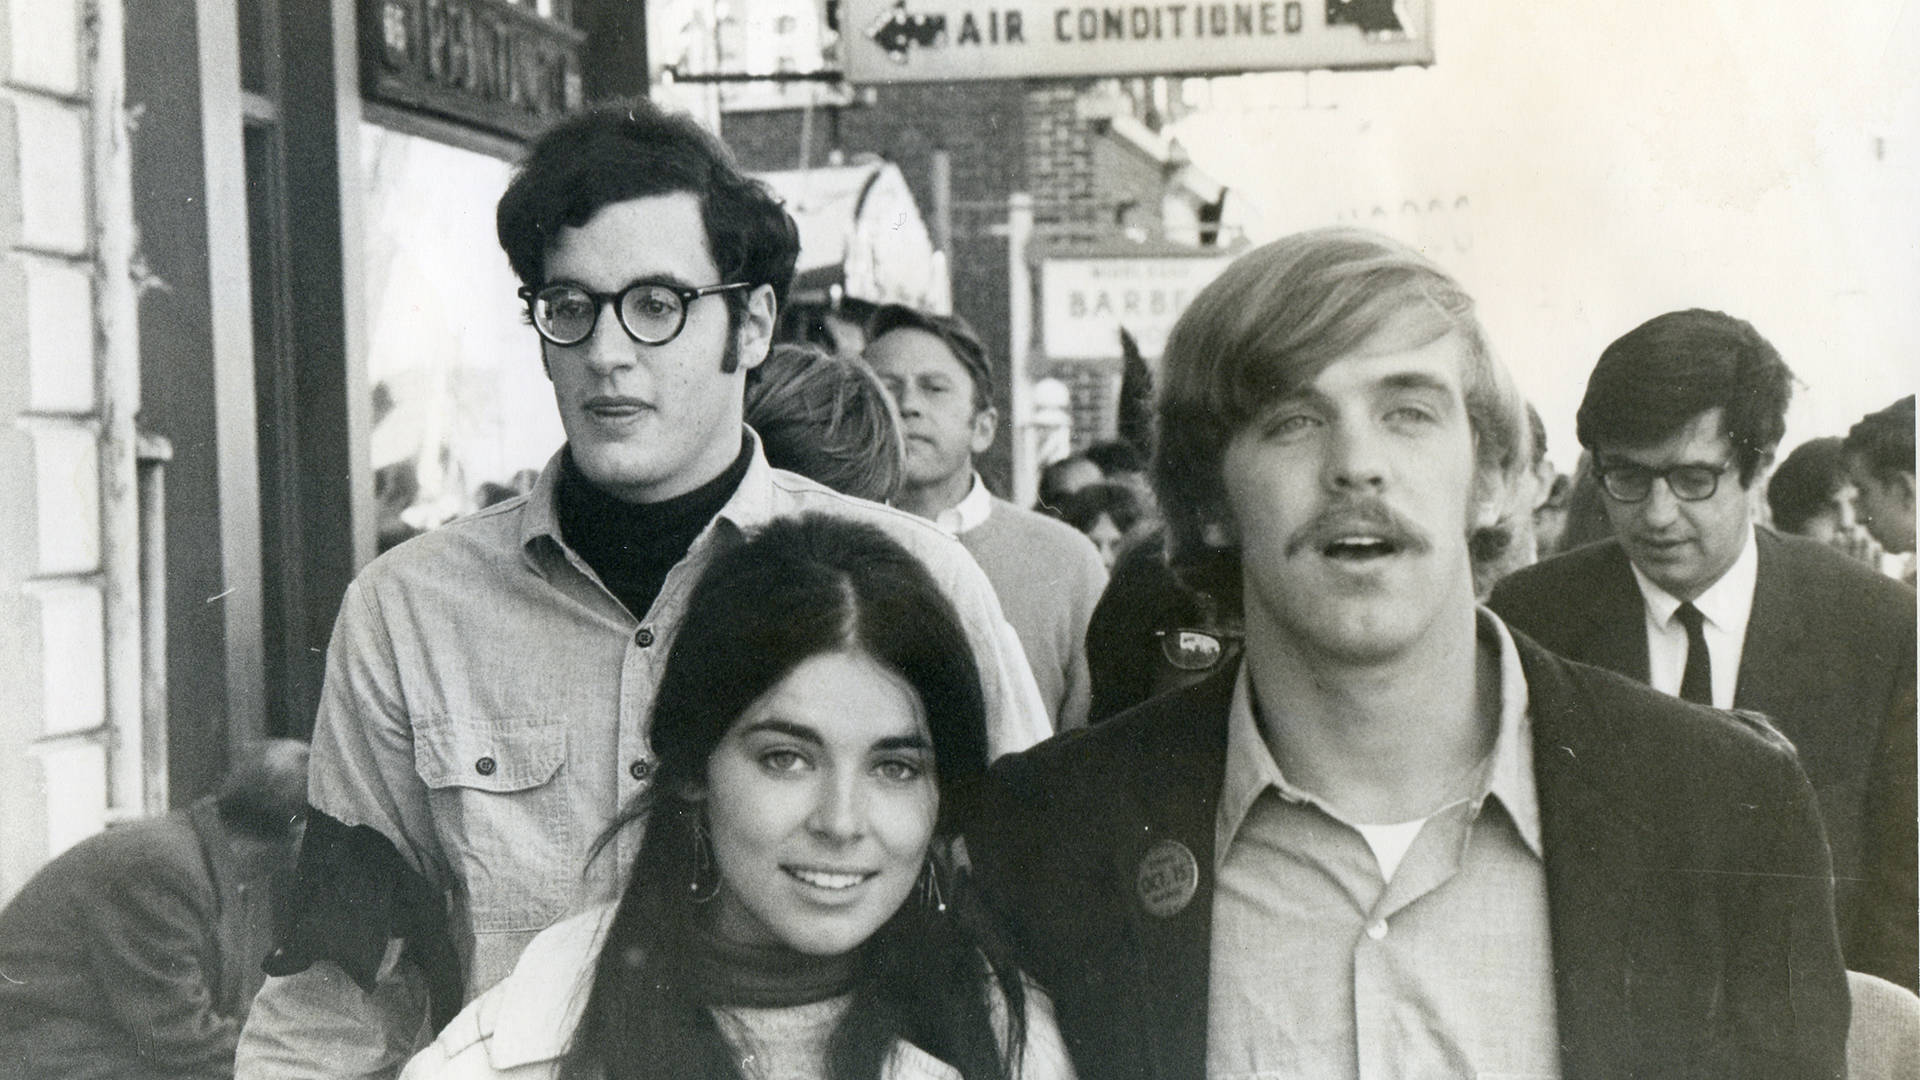 Stephen Talbot leading an anti-war march in Middletown, Conn. on October 15, 1969, with his then girlfriend Susan Heldfond -- as part of the National Moratorium Day Courtesy of Stephen Talbot